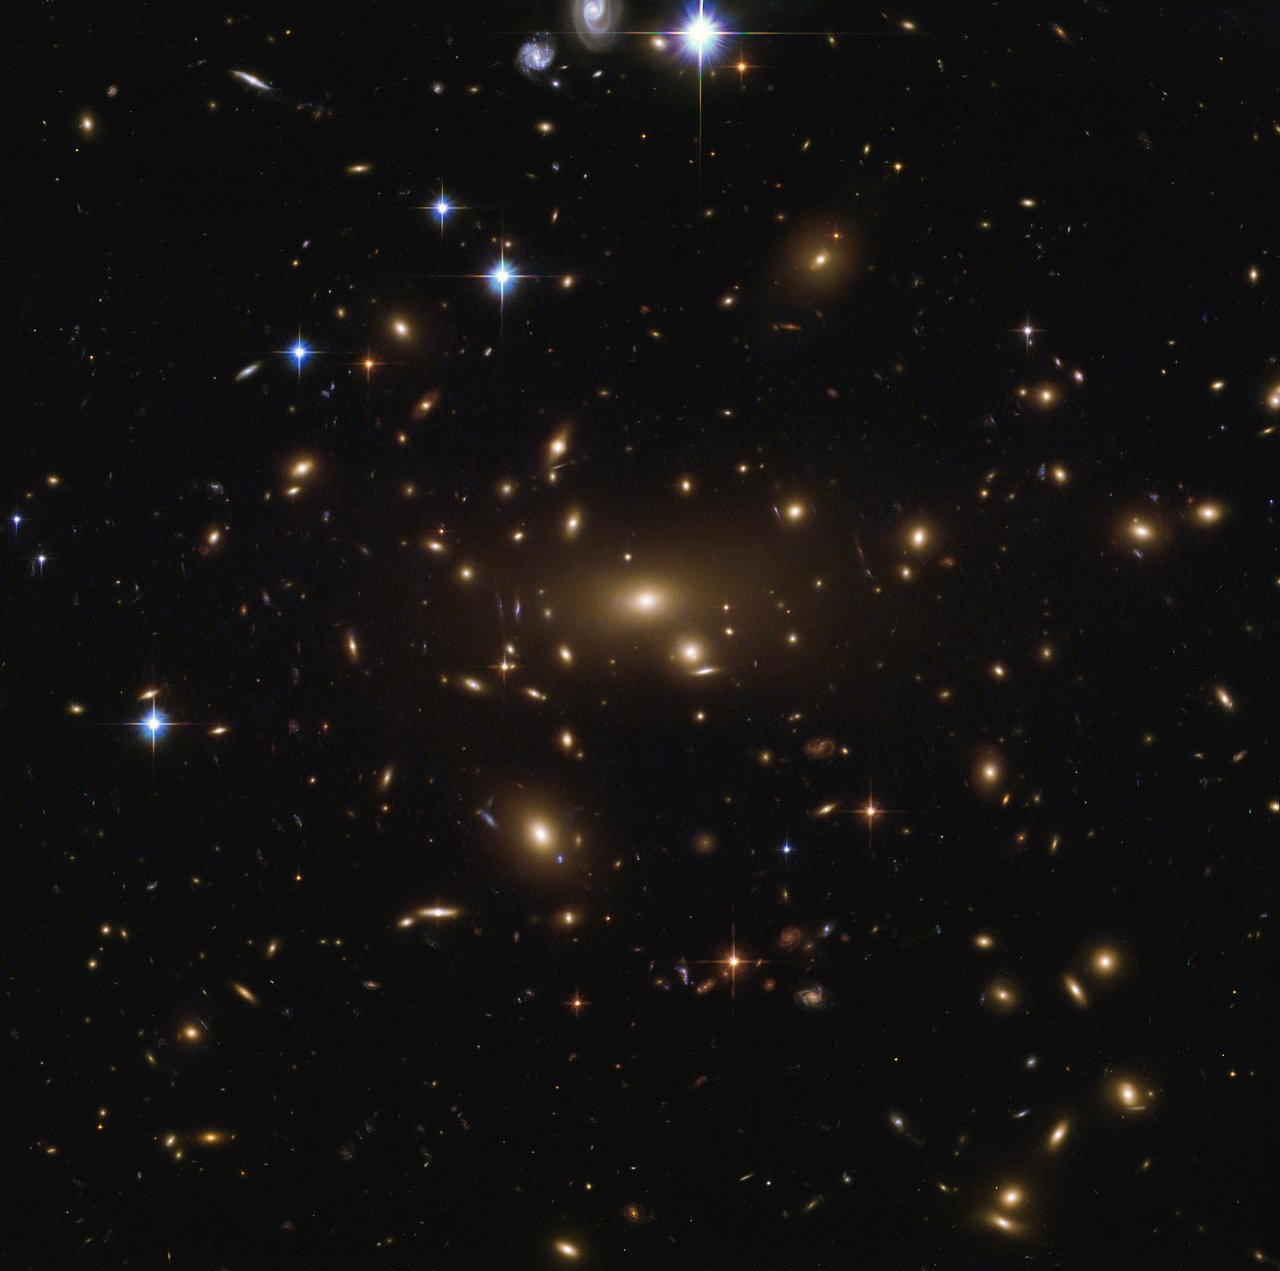 Abell's richest cluster